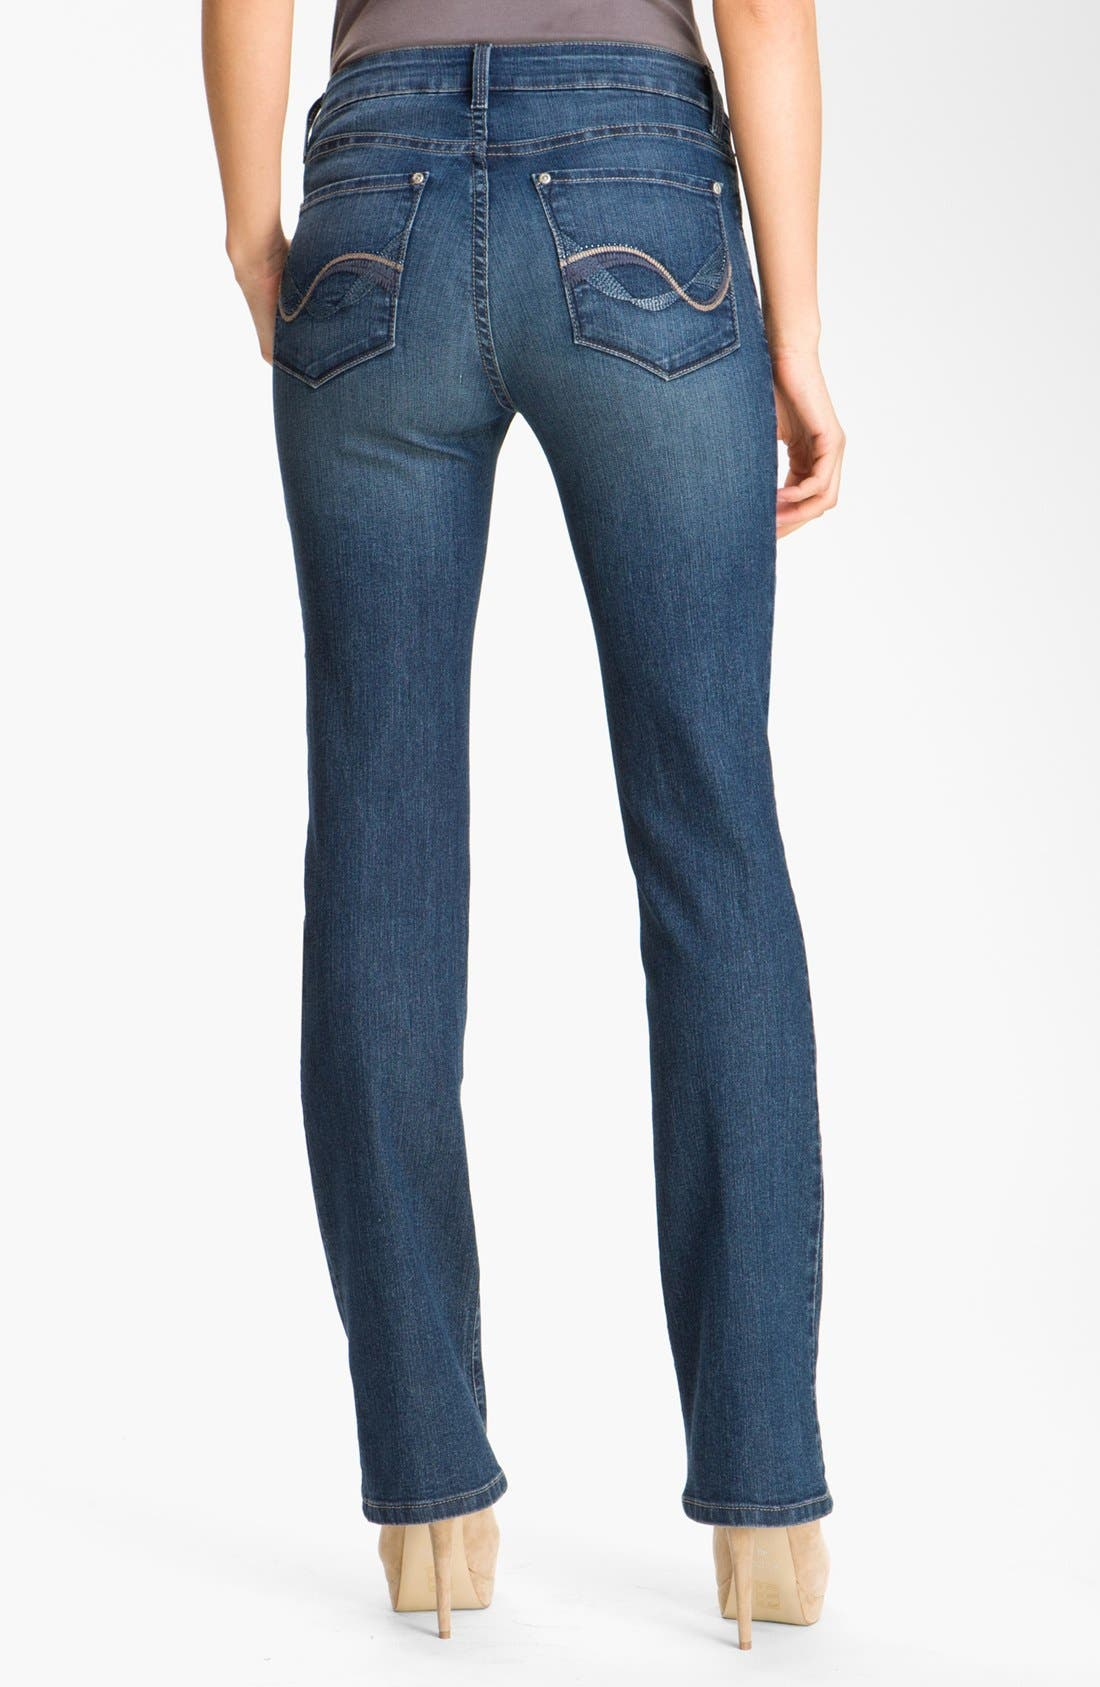 Alternate Image 2  - NYDJ 'Barbara' Embellished Bootcut Stretch Jeans (Petite)